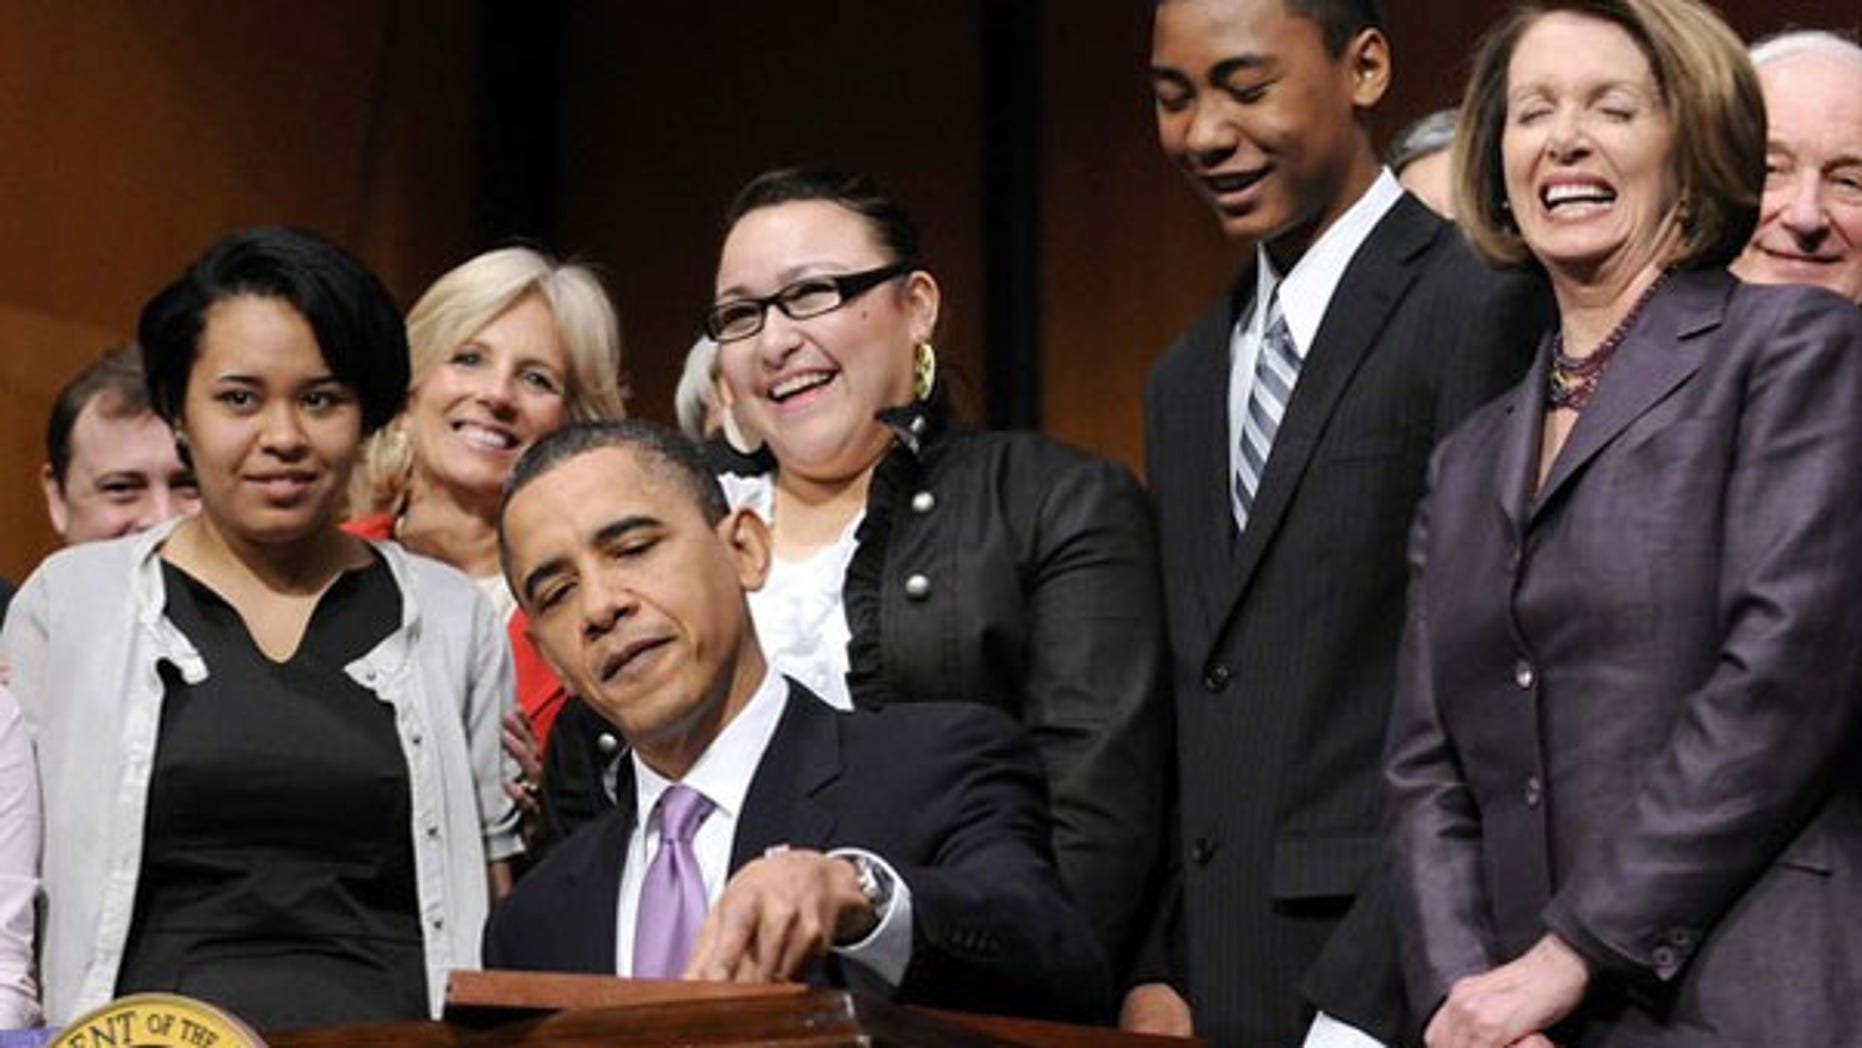 President Obama signs the Health Care and Education Reconciliation Act into law at Northern Virginia Community College in Alexandria, Va., March 30. (Reuters Photo)